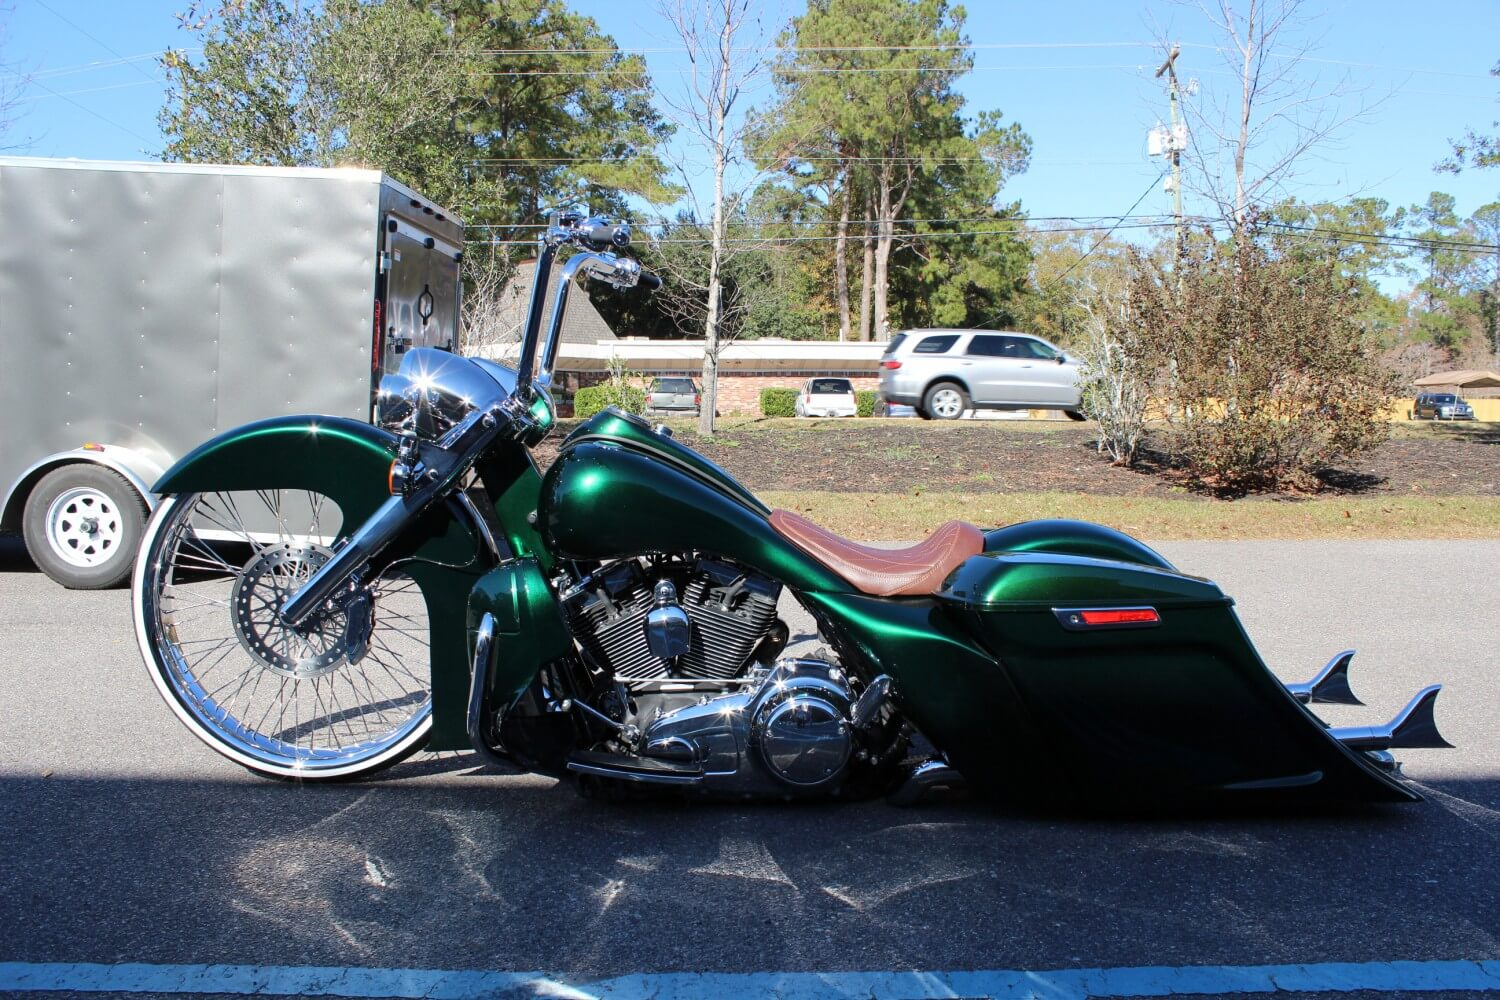 Chevy Parts Dealer >> Chevy Green Road King | Camtech Custom Baggers | Bike, Motorcycle, Chopper